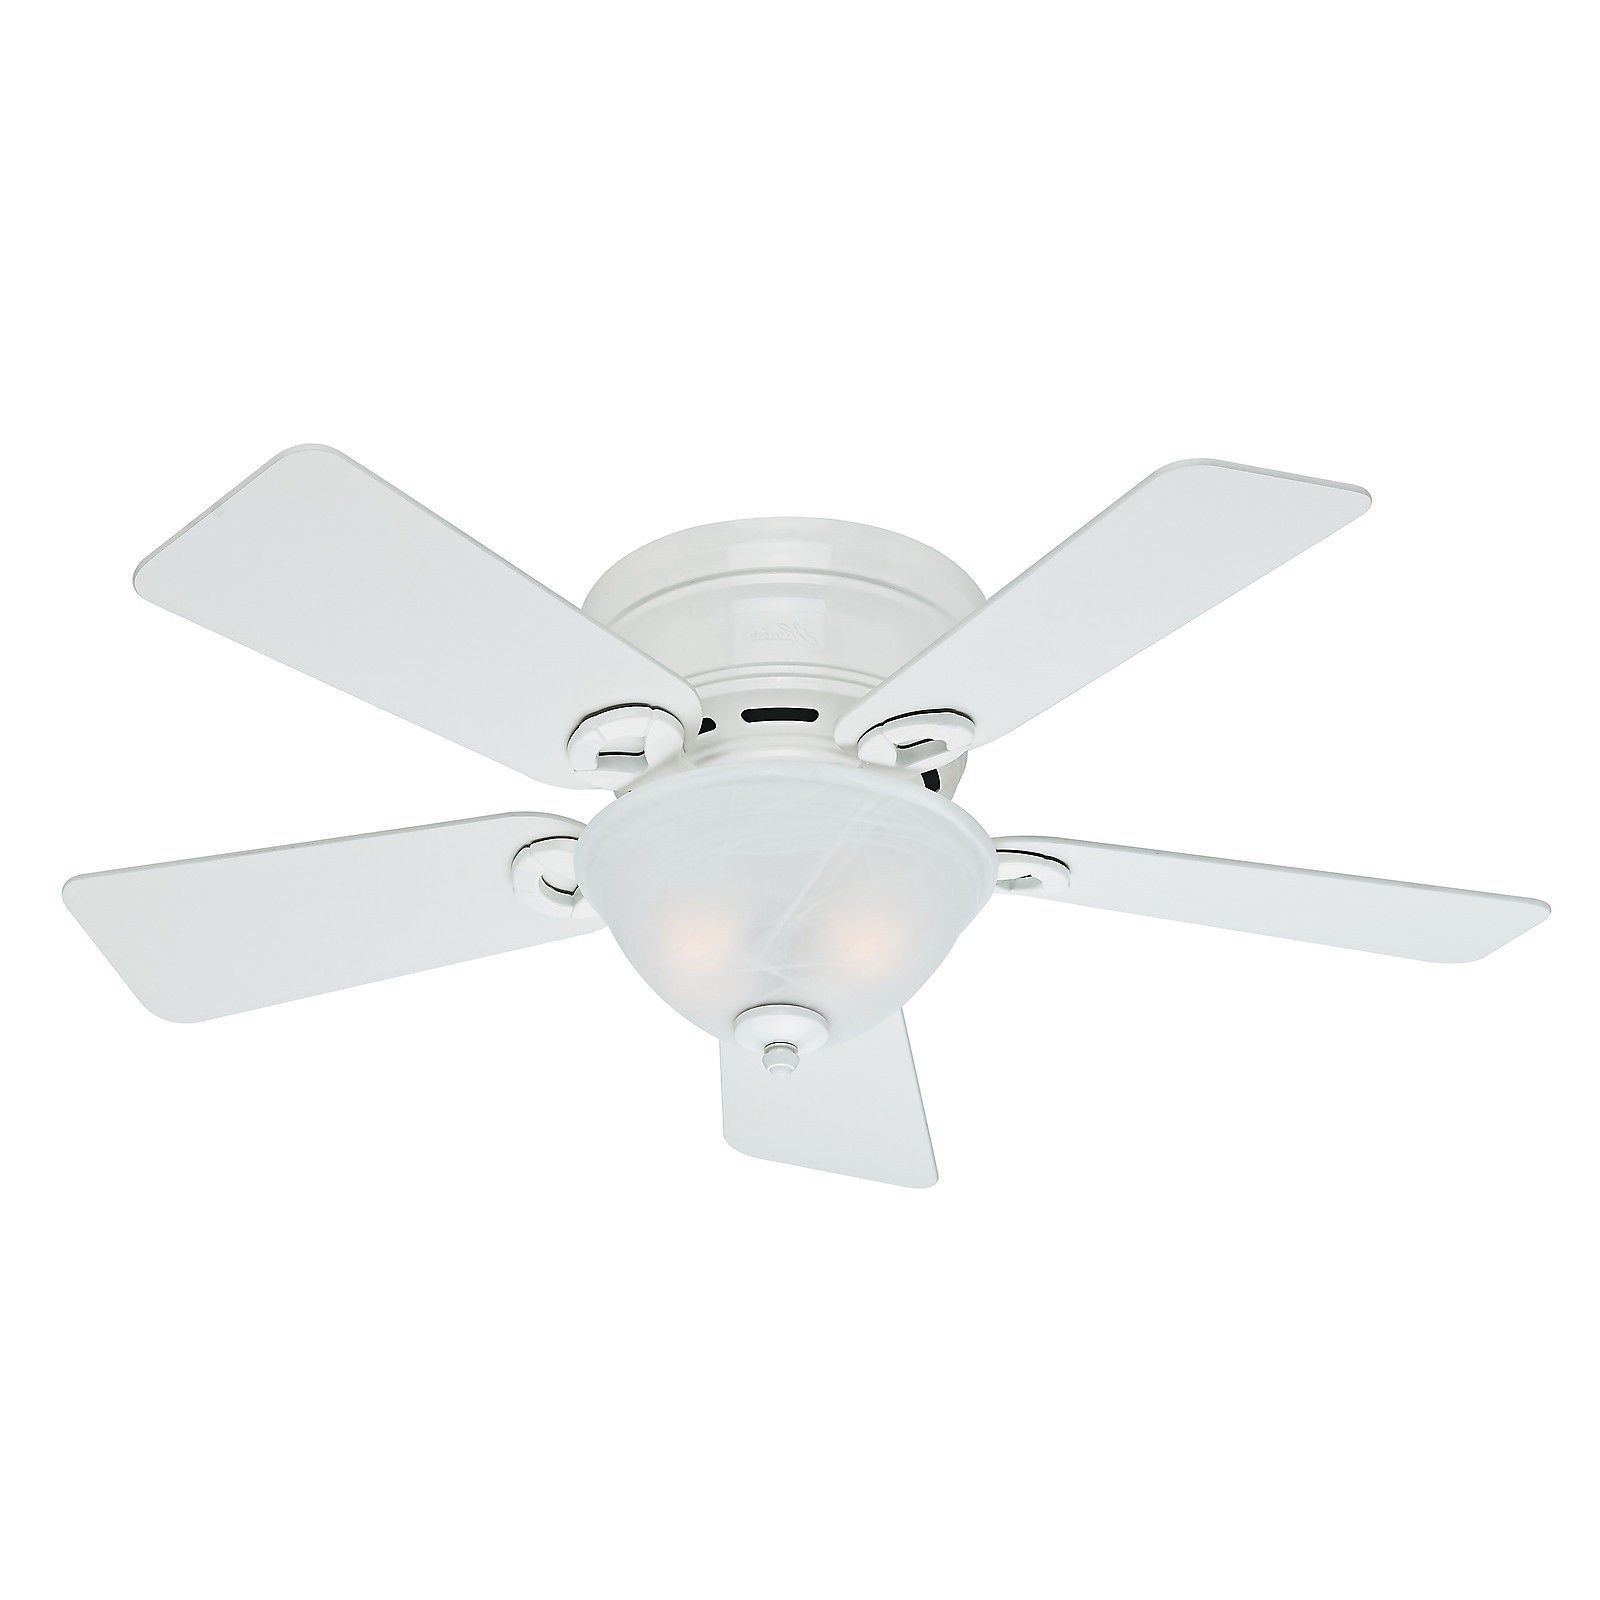 Low Profile Outdoor Ceiling Fans Low Profile Outdoor Ceiling Light For Most Recently Released Low Profile Outdoor Ceiling Fans With Lights (View 7 of 20)